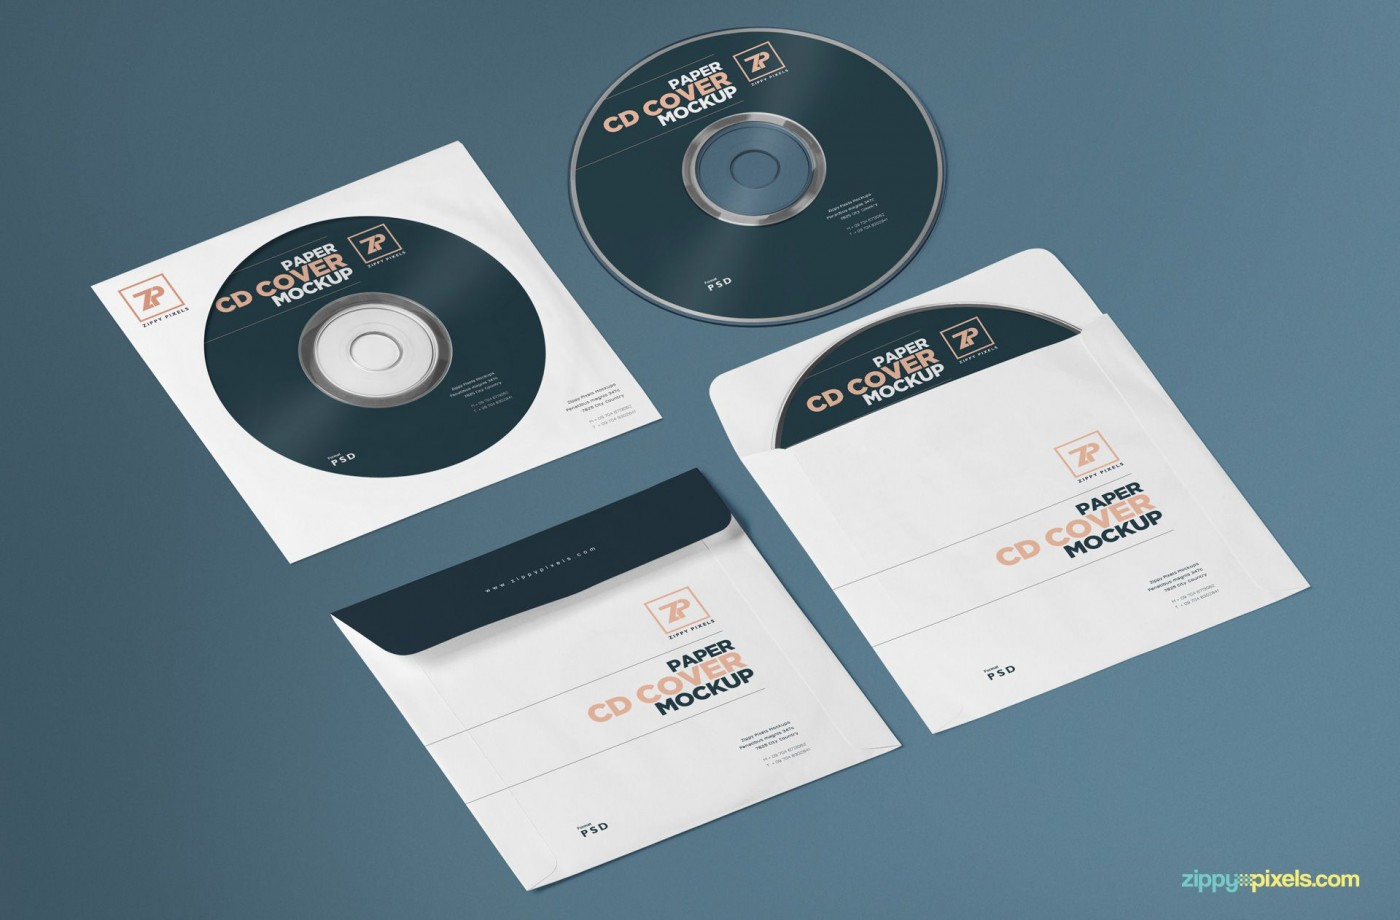 000 Striking Free Cd Cover Design Template Photoshop High Resolution  Label Psd Download1400